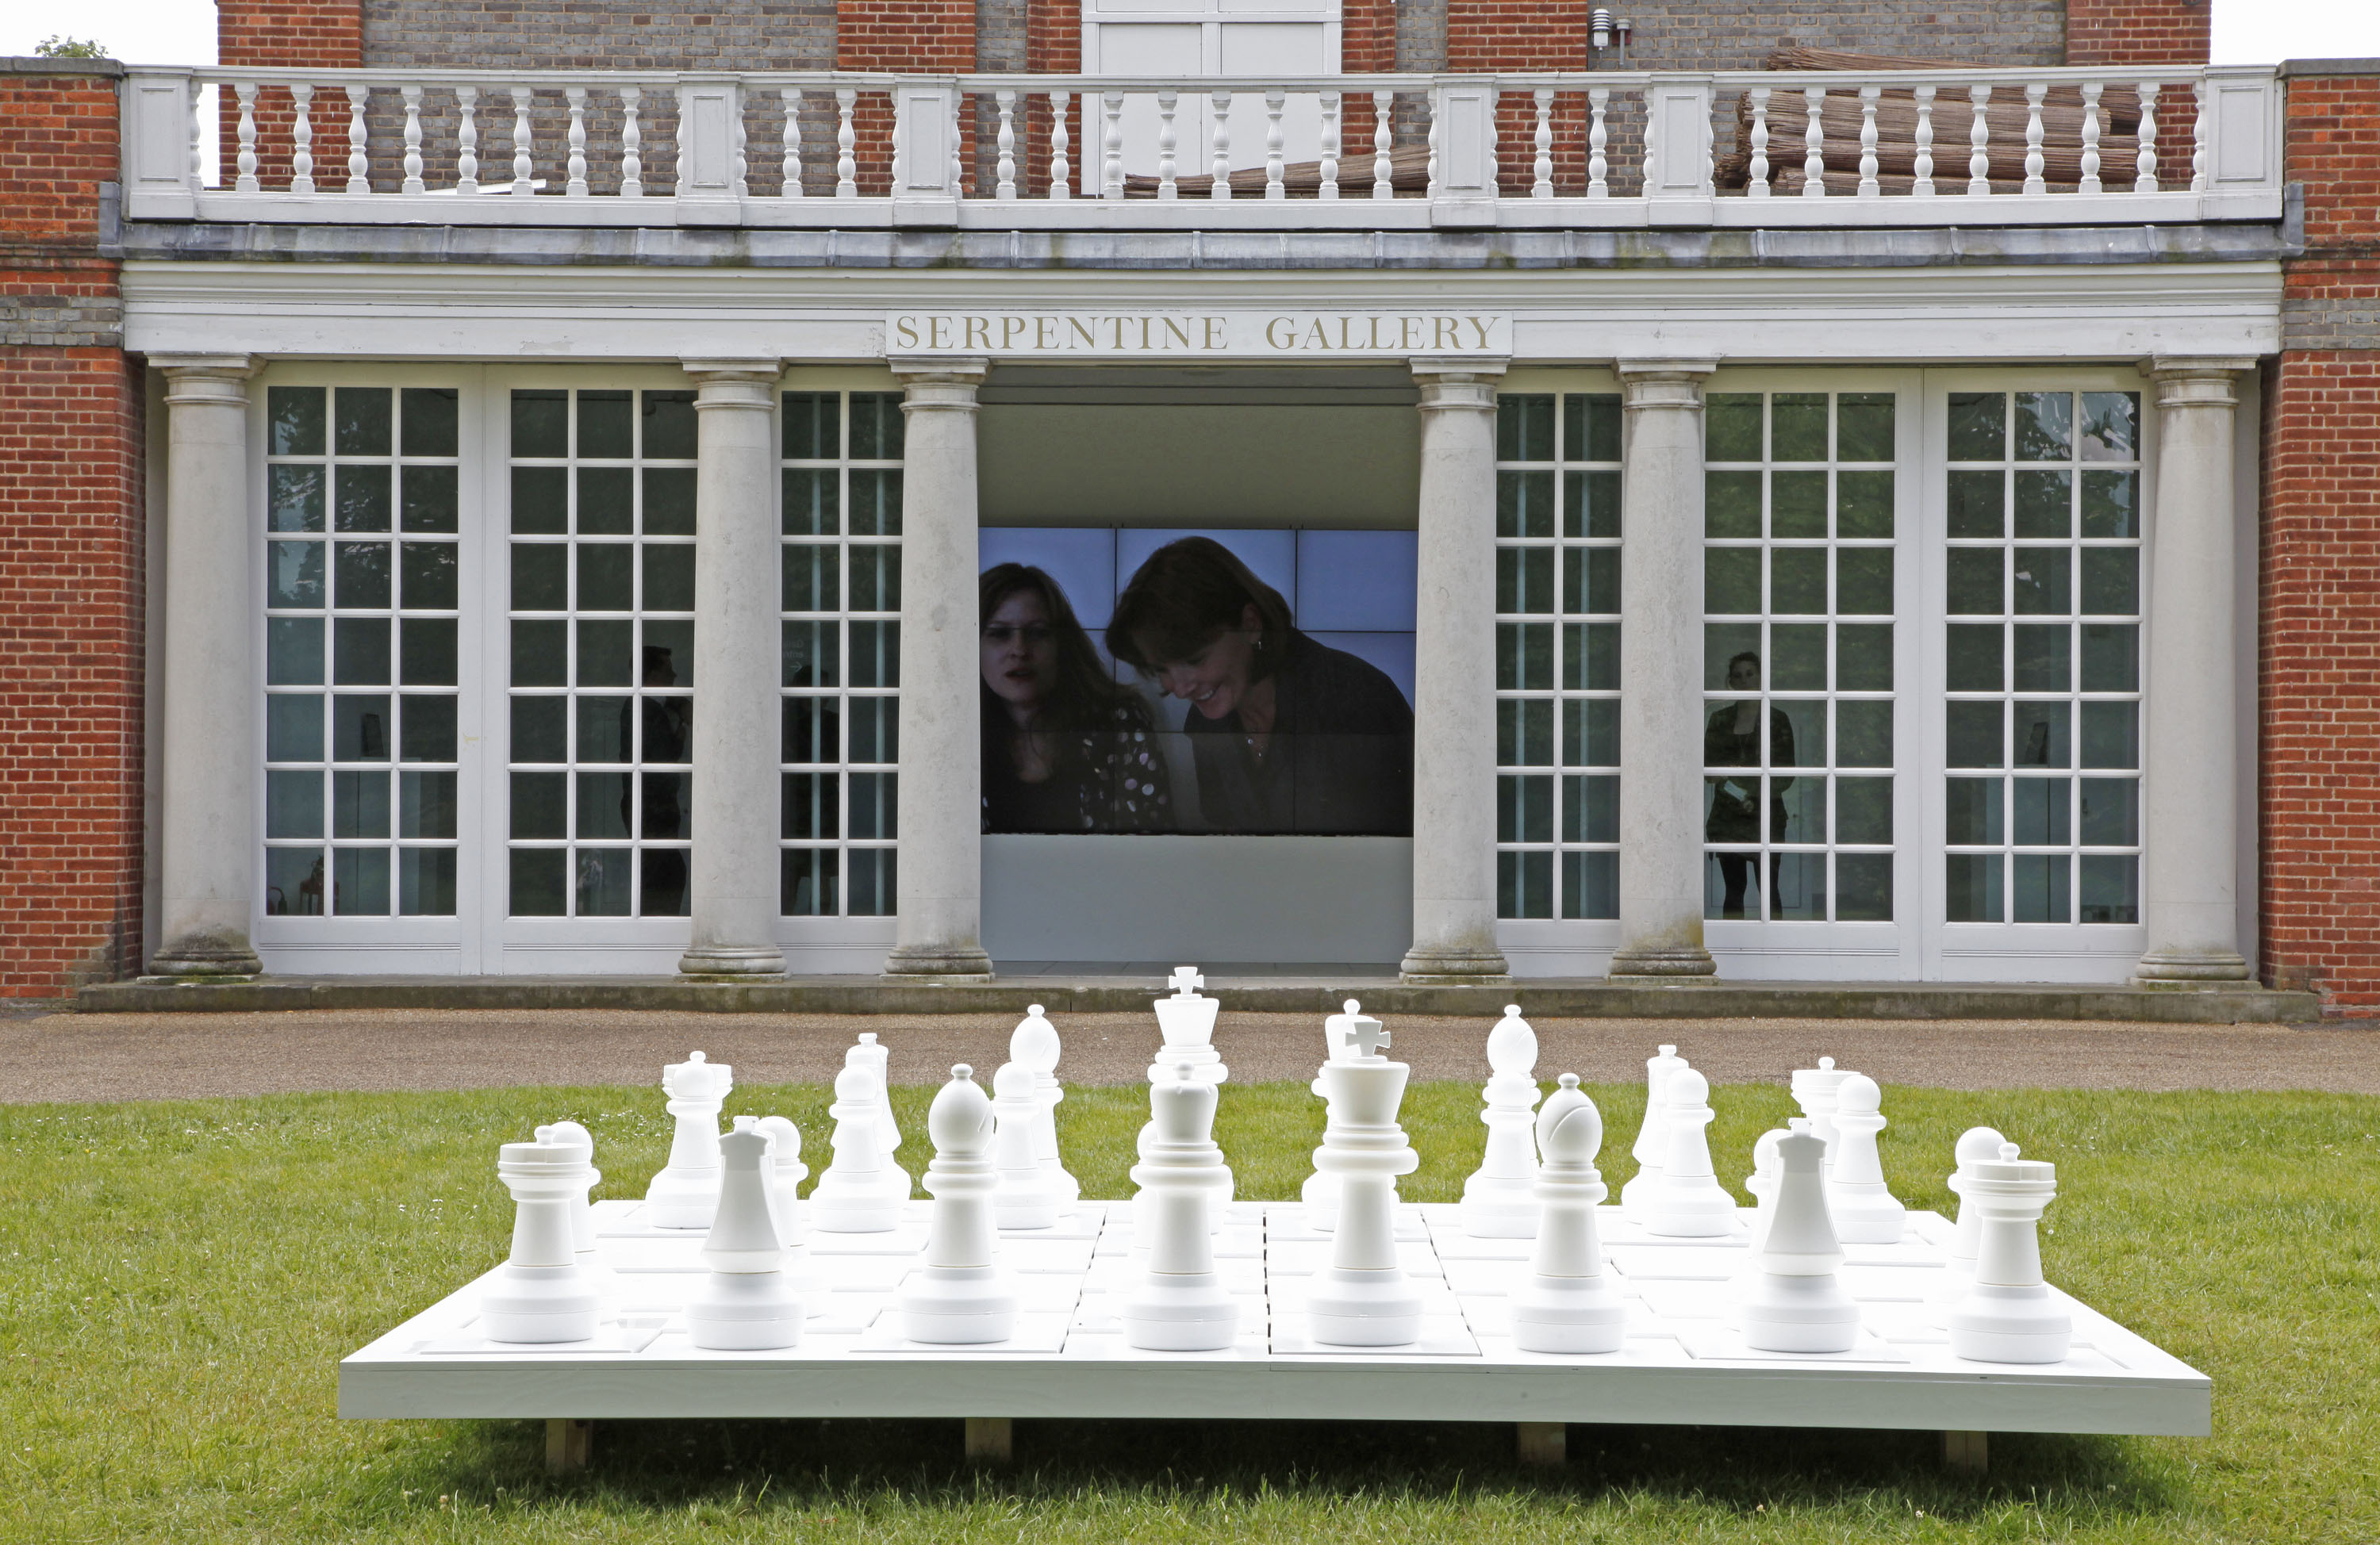 Yoko Ono - To The Light (Installation View), Serpentine Gallery